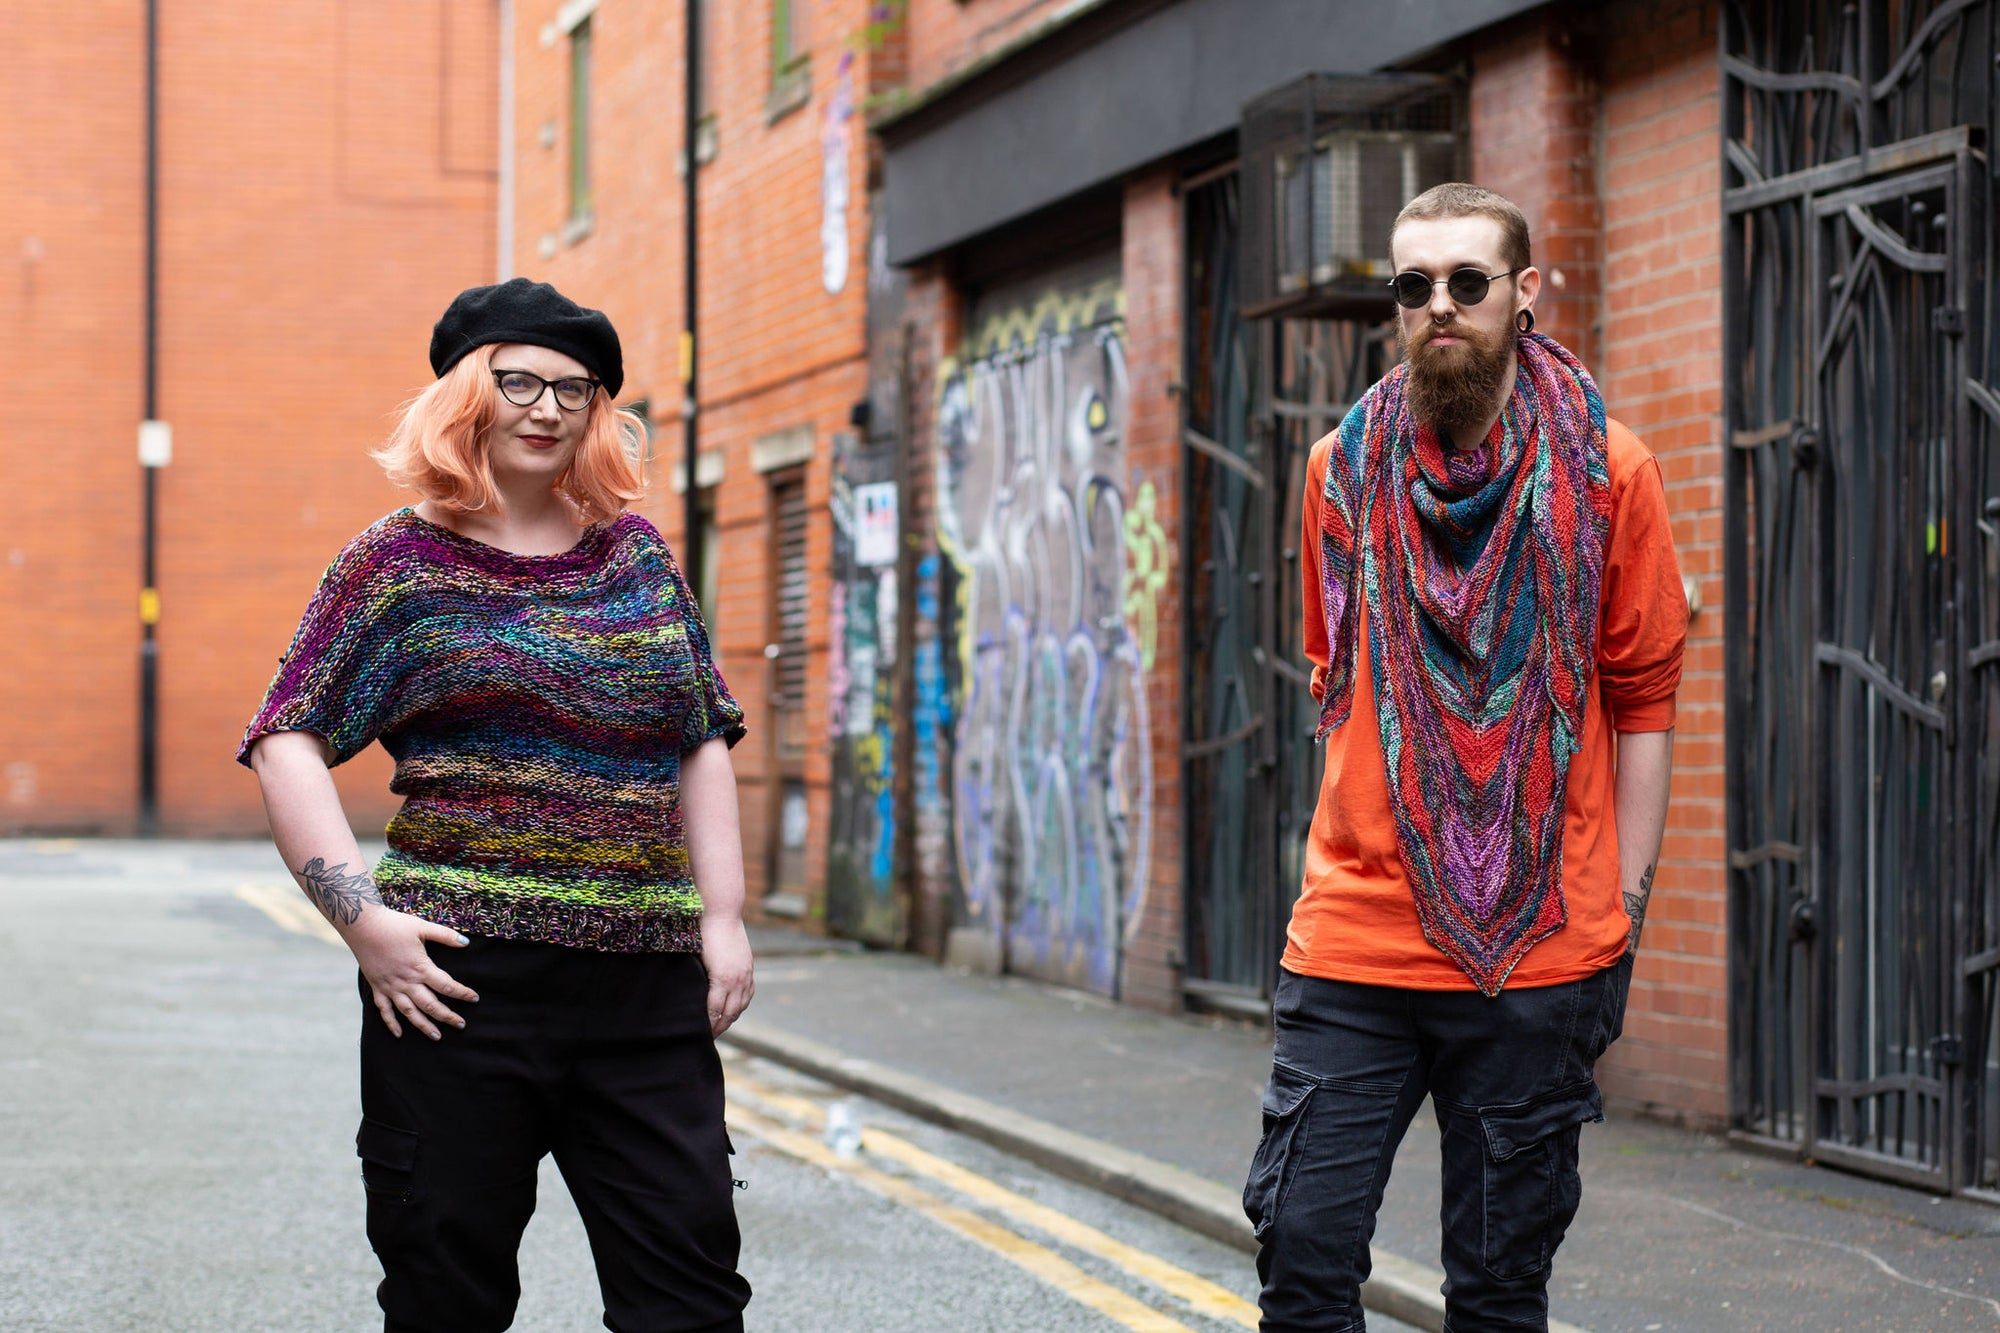 Countess and Haydn in knitwear in the street. Photo by Decoy Media